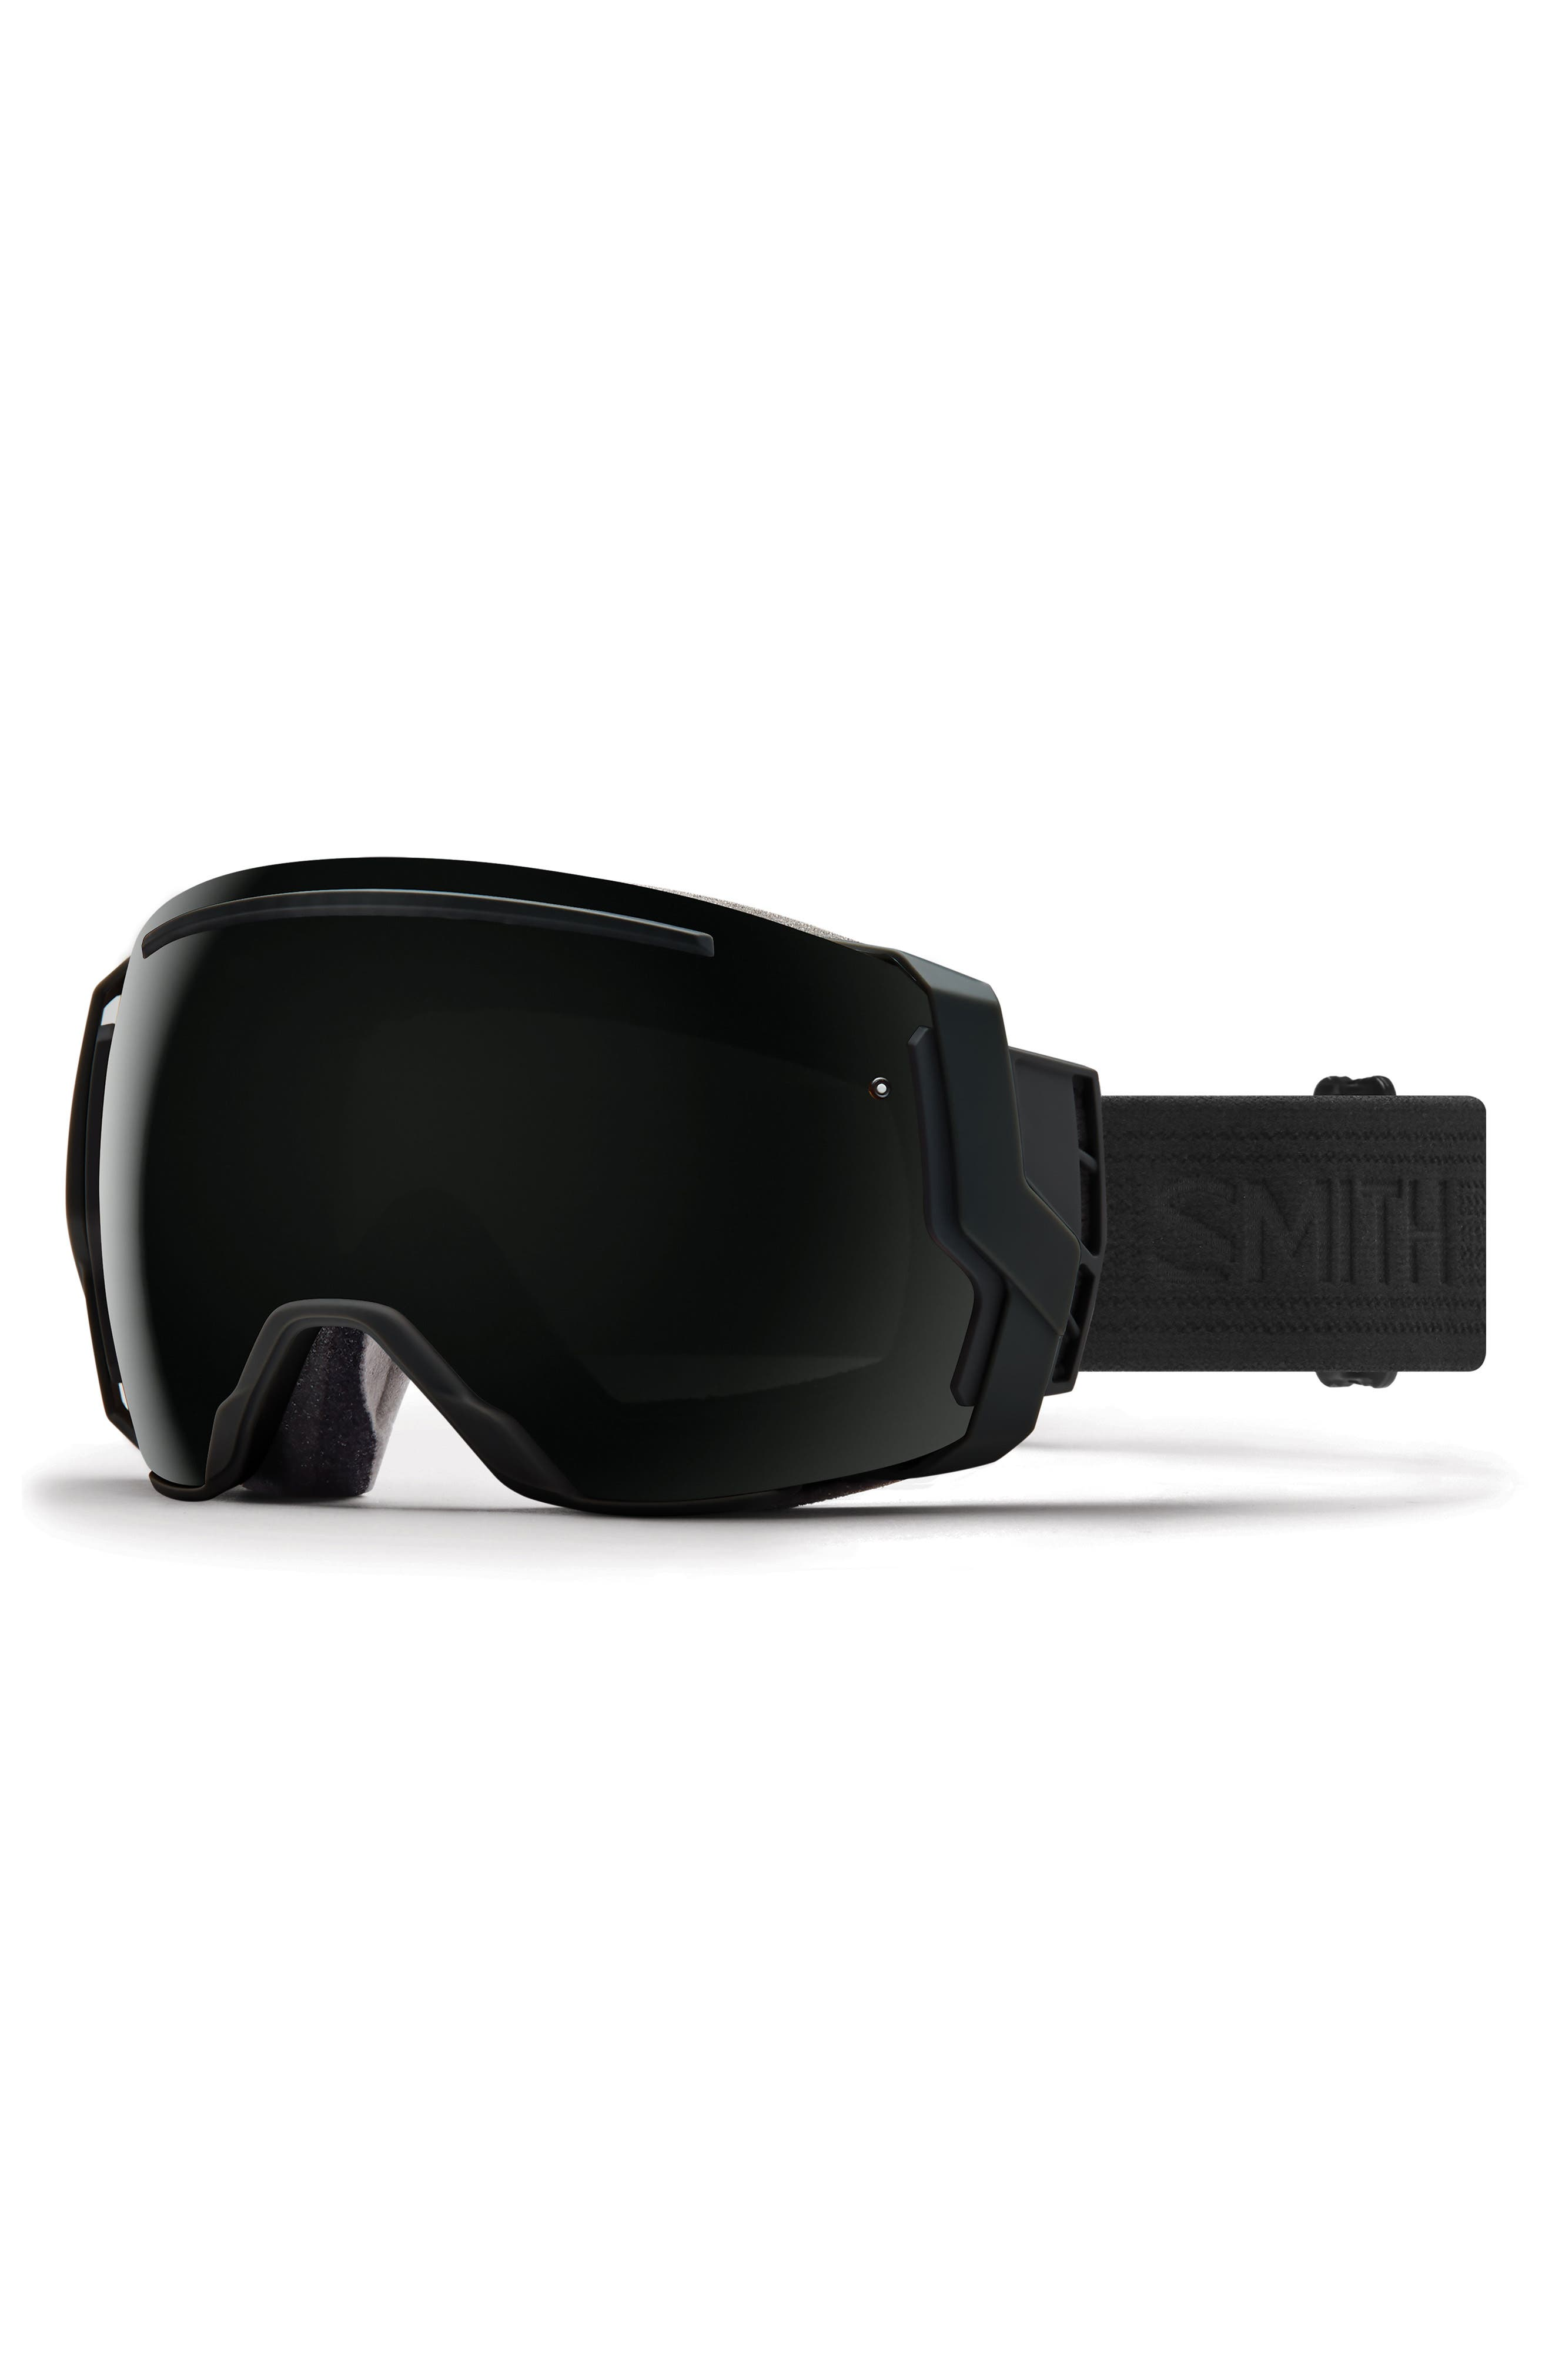 I/O7 Chromapop 185mm Snow Goggles,                         Main,                         color, 001